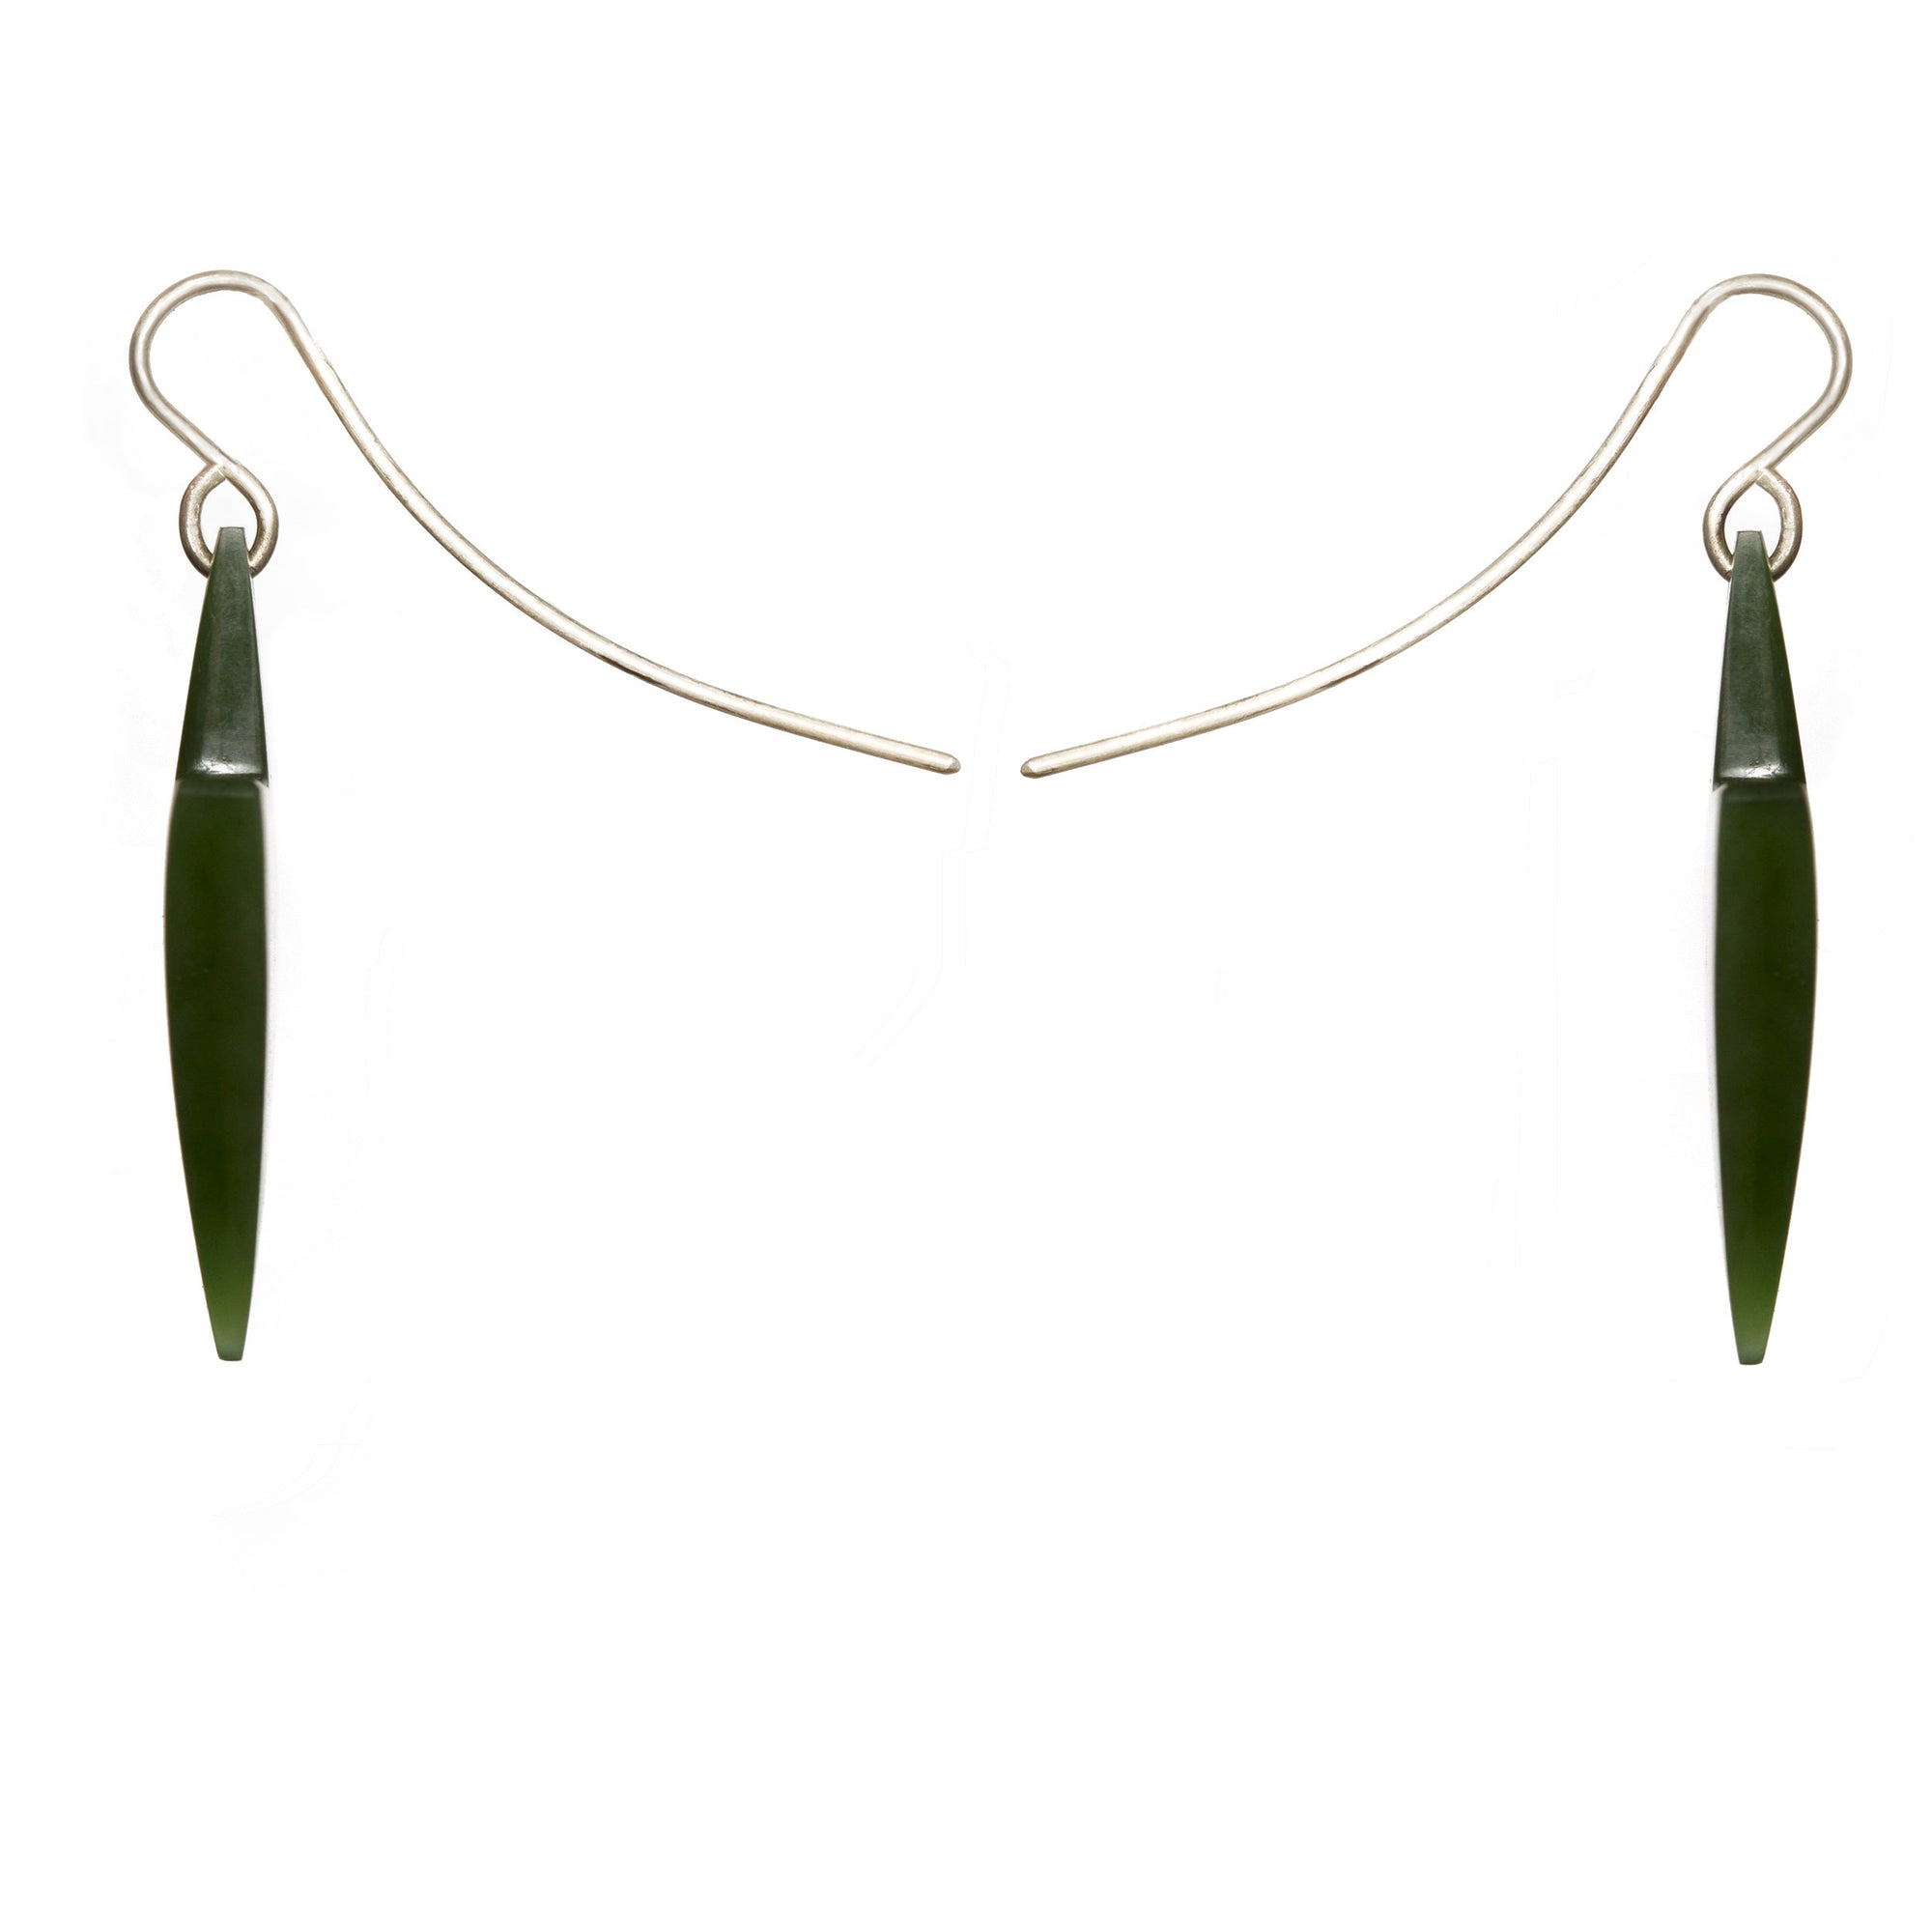 New Zealand Greenstone Arrow Head Earrings